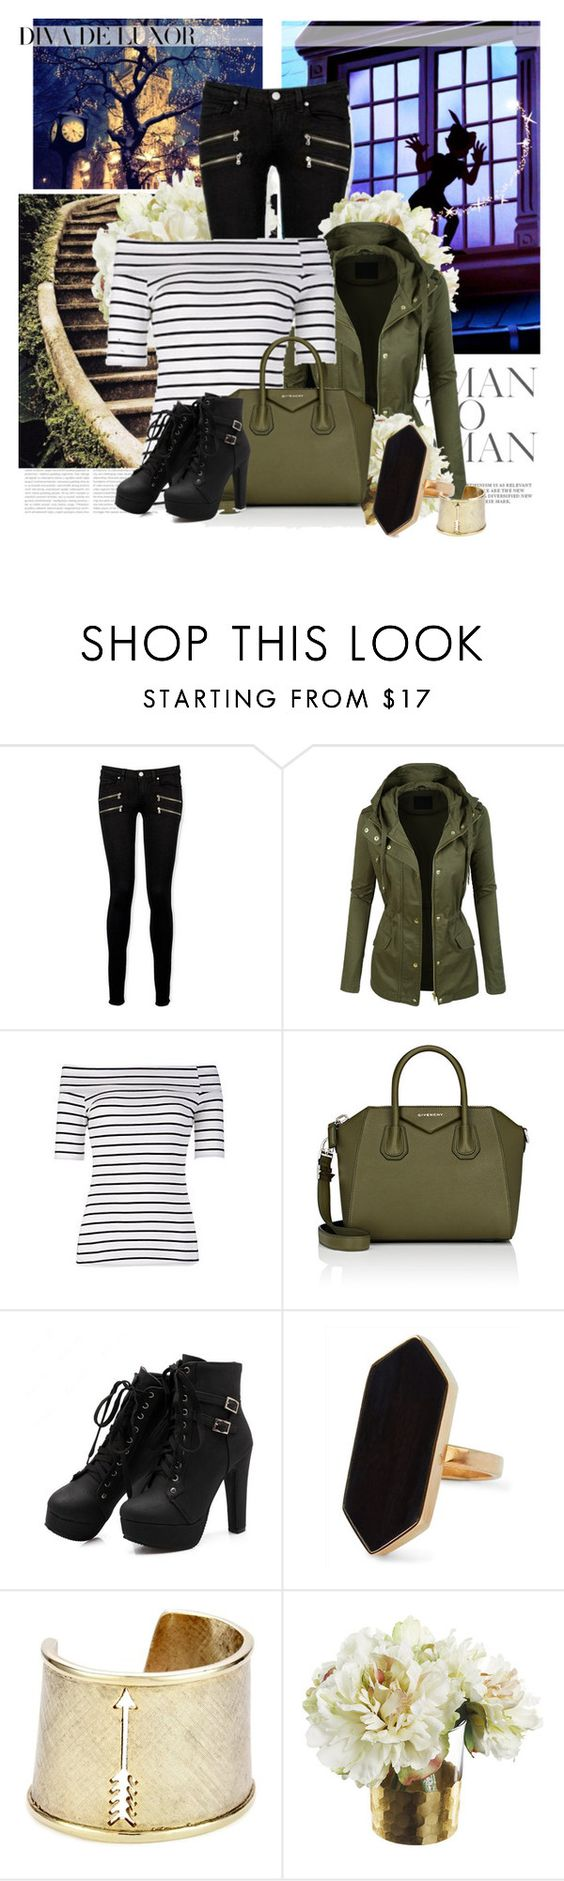 """Untitled #326"" by elanorjoy ❤ liked on Polyvore featuring Oris, Paige Denim, LE3NO, Bardot, Givenchy, Jaeger, House of Harlow 1960 and DIVA"